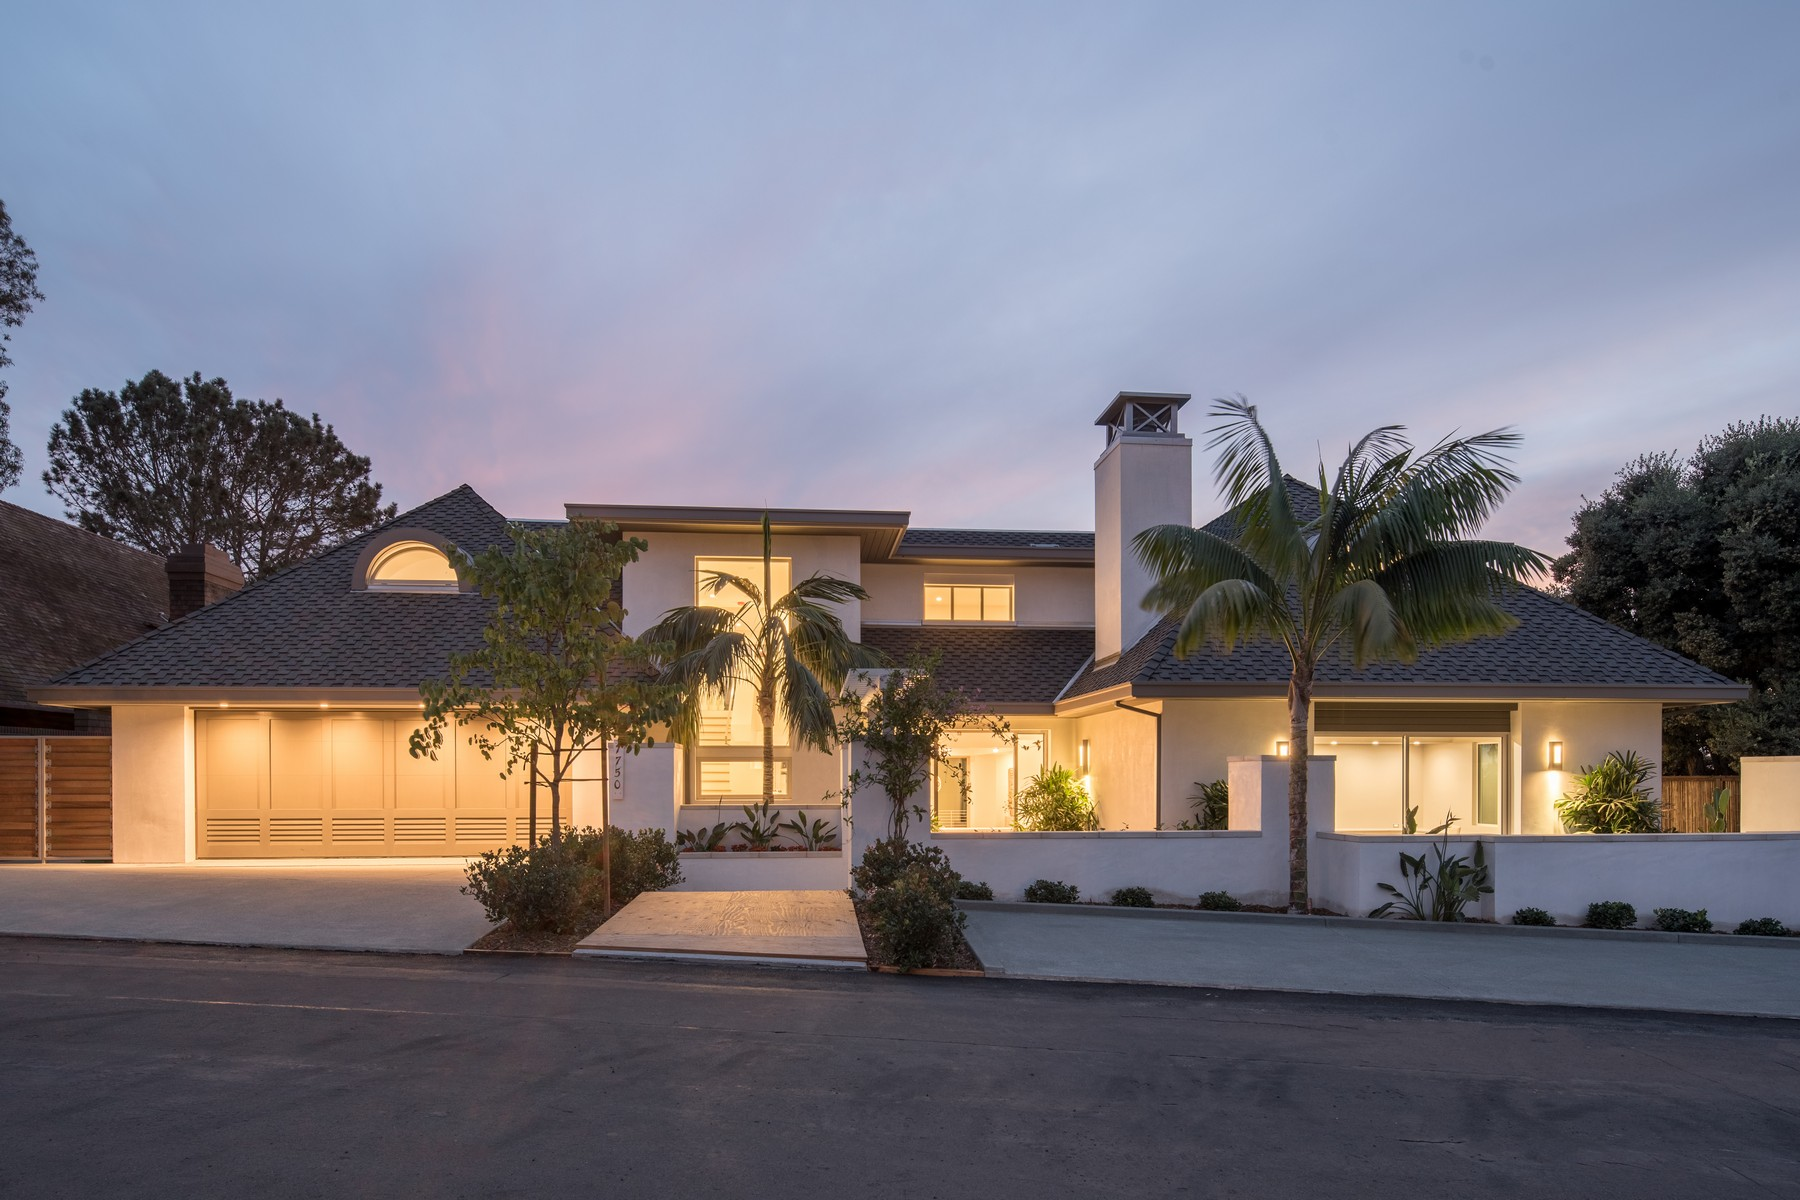 Single Family Home for Sale at 7750 Lookout Drive 7750 Lookout Drive La Jolla, California 92037 United States